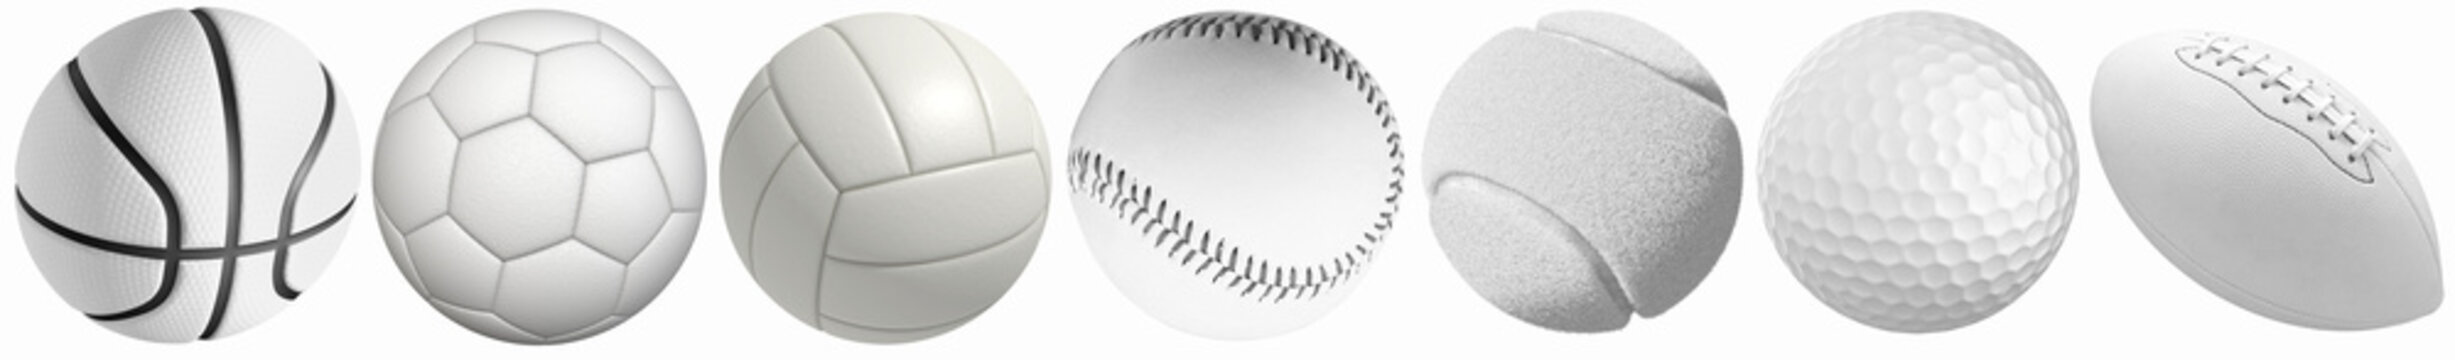 Different sports balls in a row: golf, basketball, volleyball, football, tennis, rugby, baseball isolated on a white background.